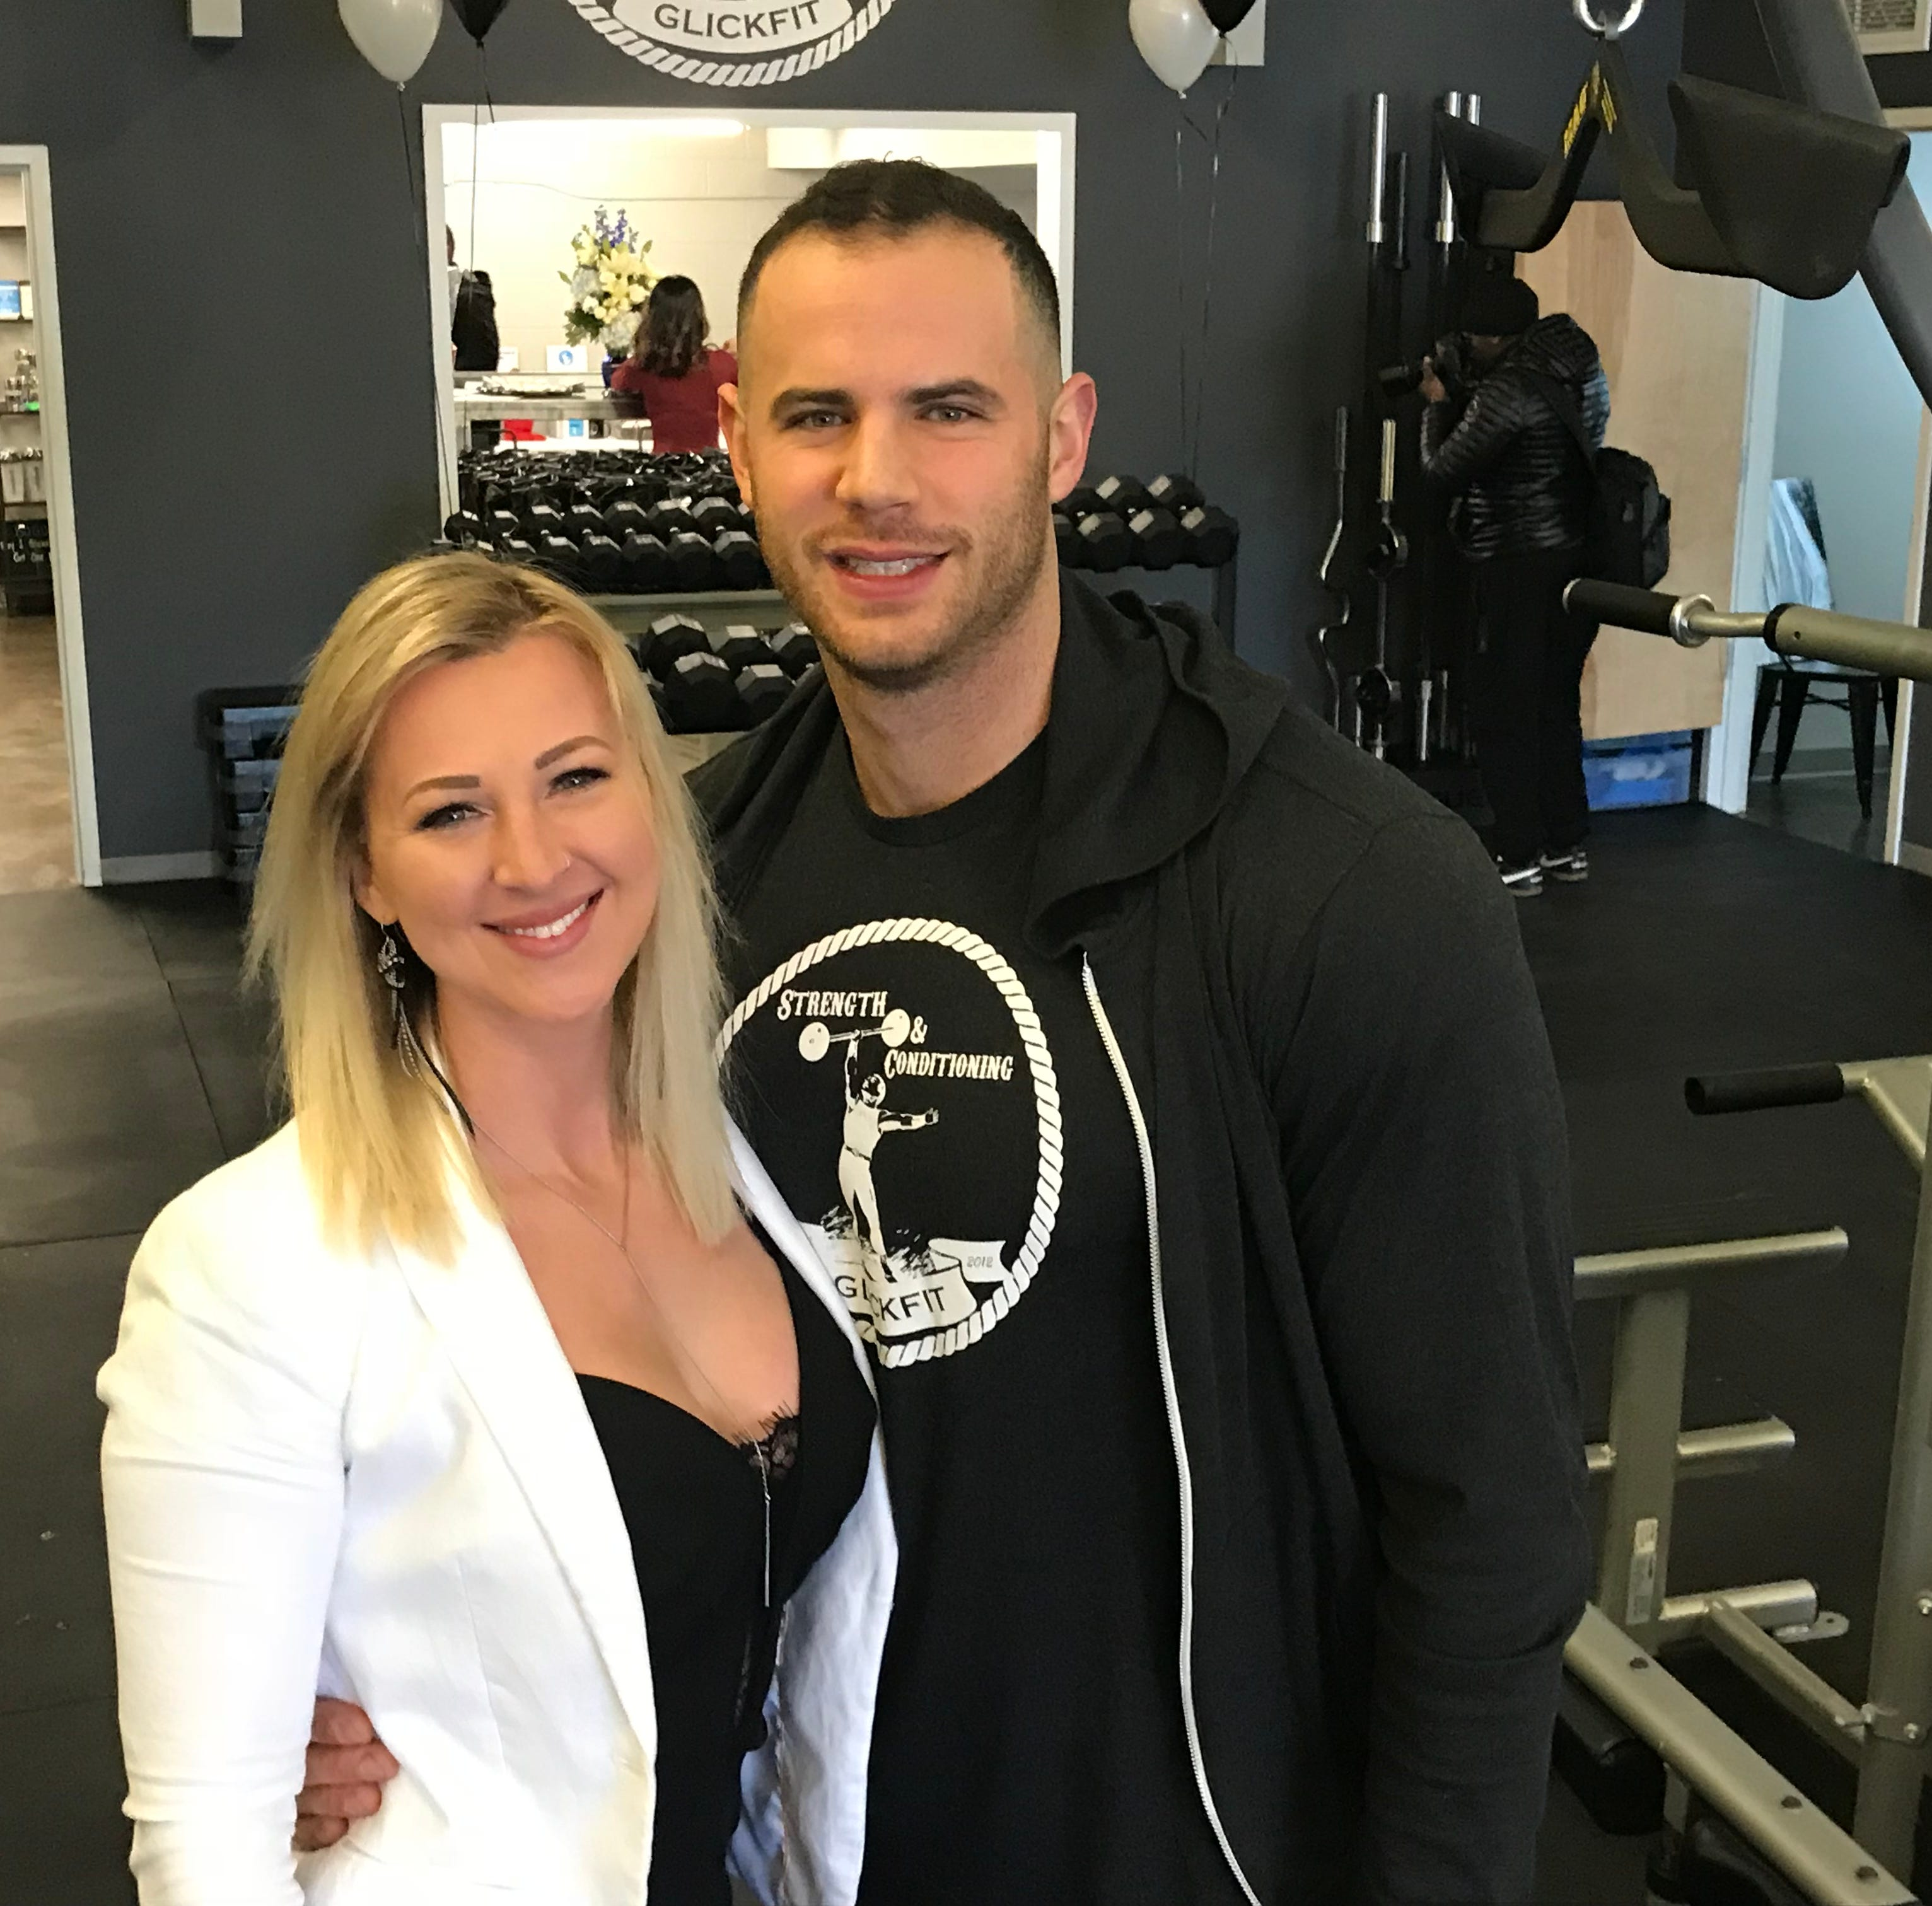 Instead of paying for a wedding, model couple open gym in South Wedge